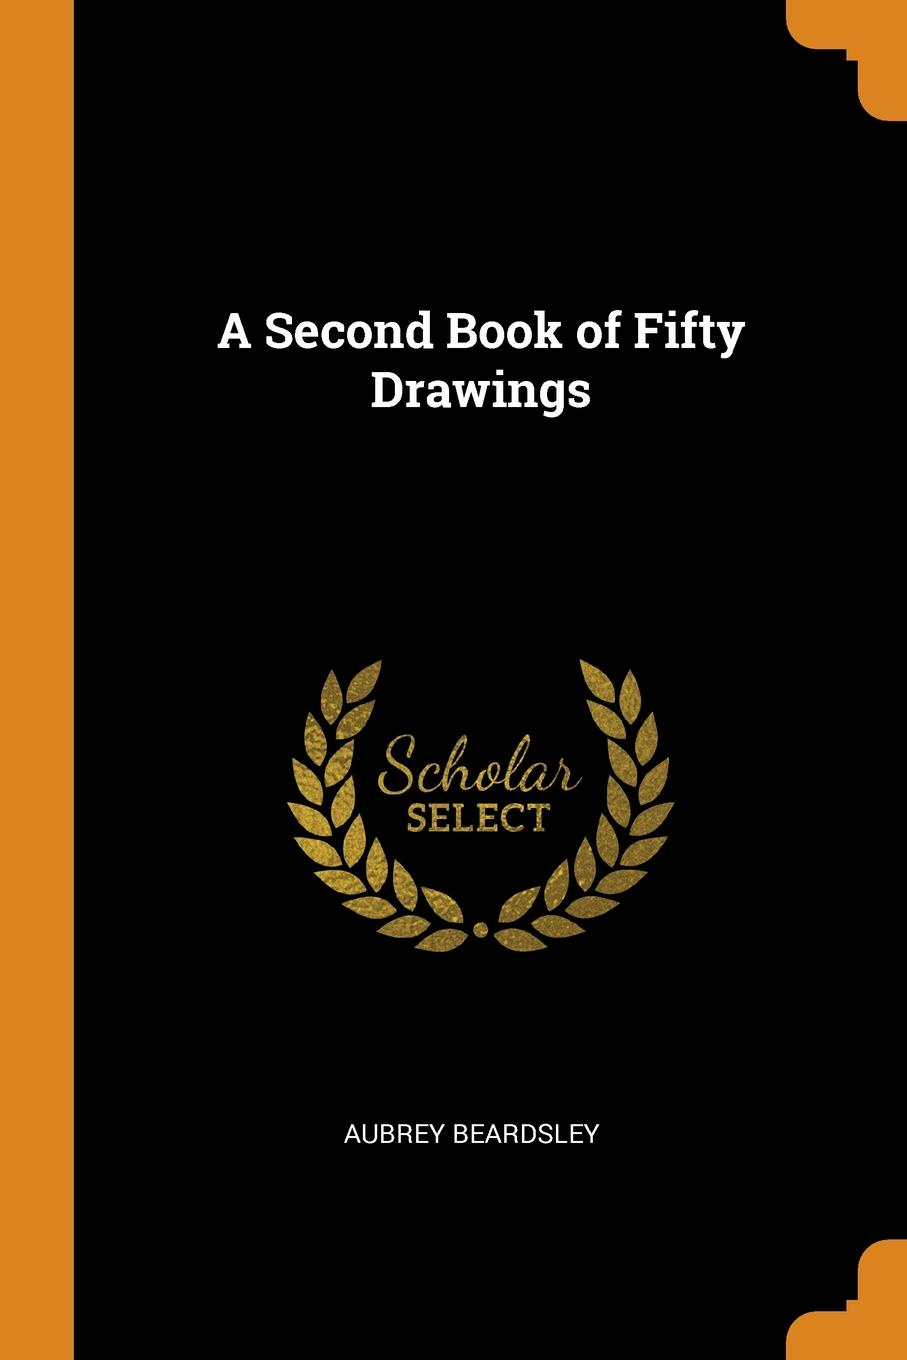 Aubrey Beardsley A Second Book of Fifty Drawings book of america – inside fifty states today